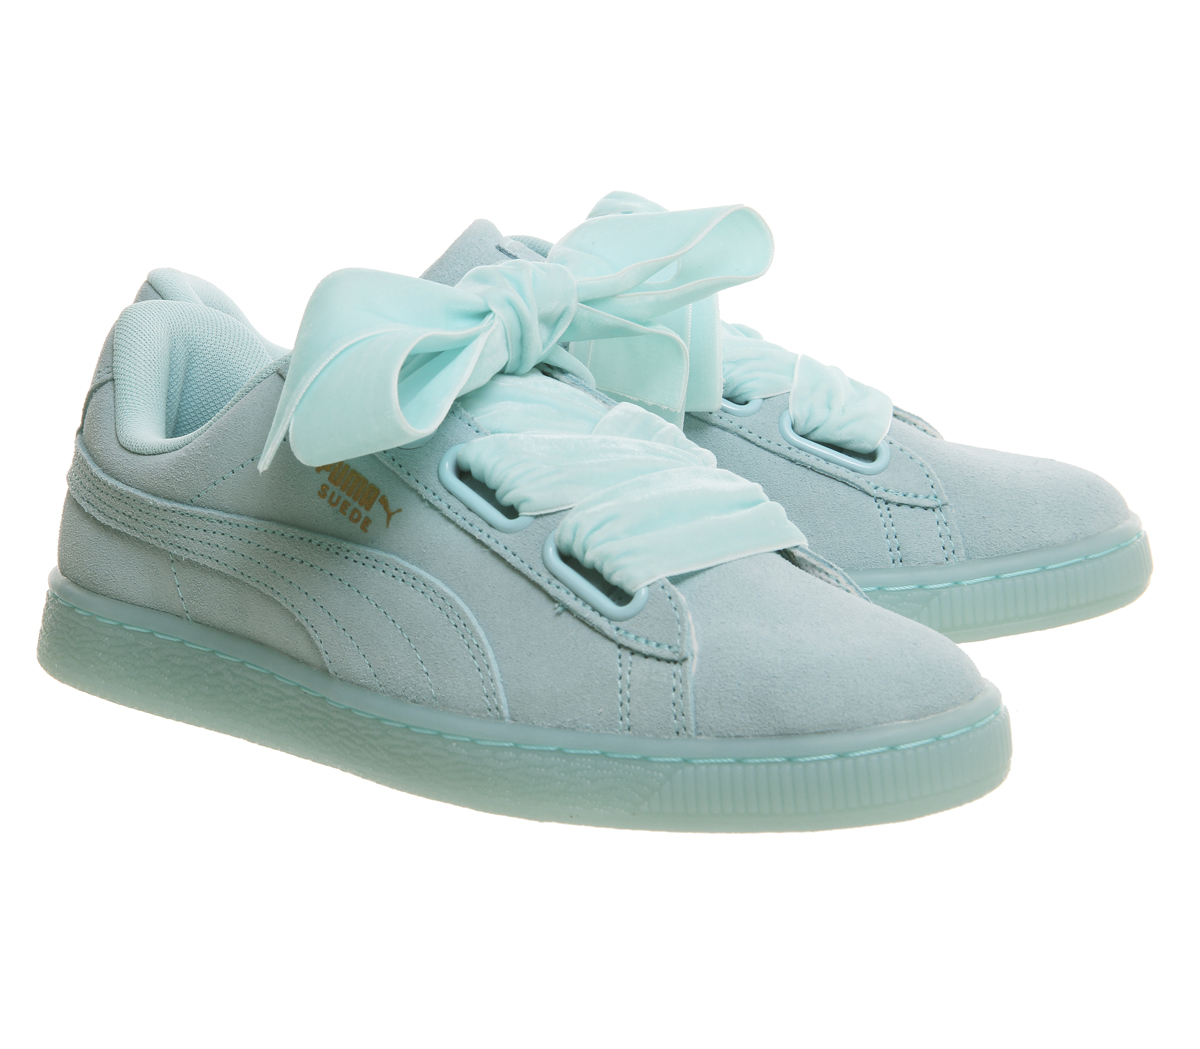 Womens-Puma-Suede-Heart-Trainers